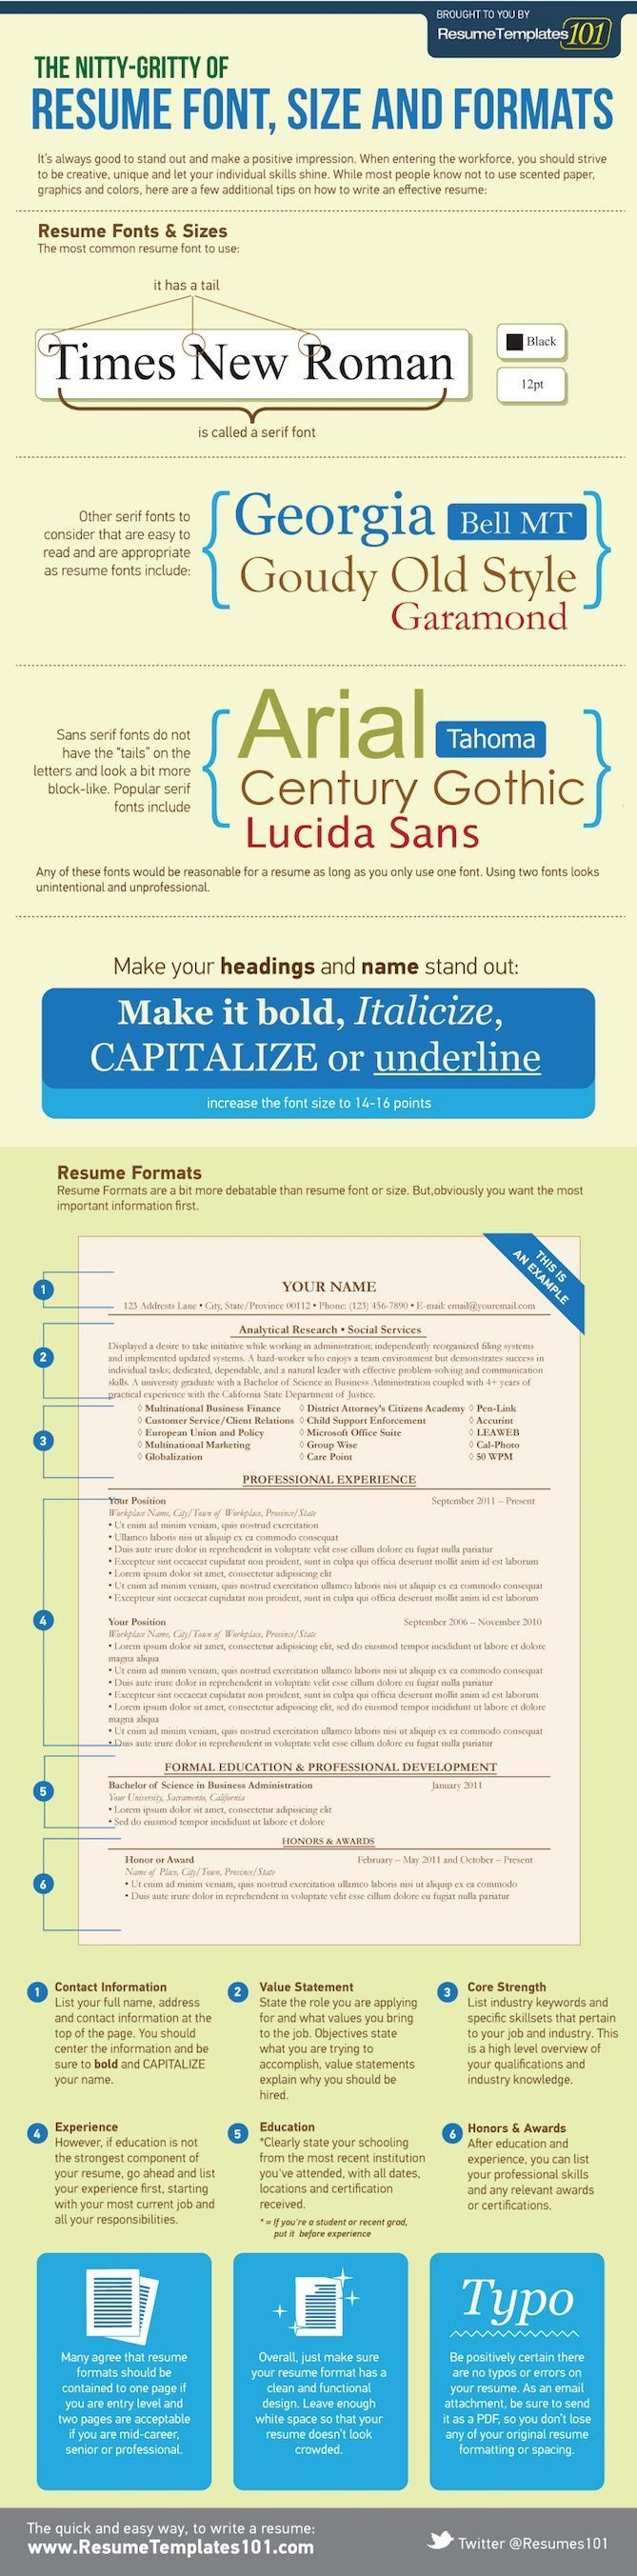 The Nitty-Gritty of Resume Font, Size, and Formats | Resume Tips